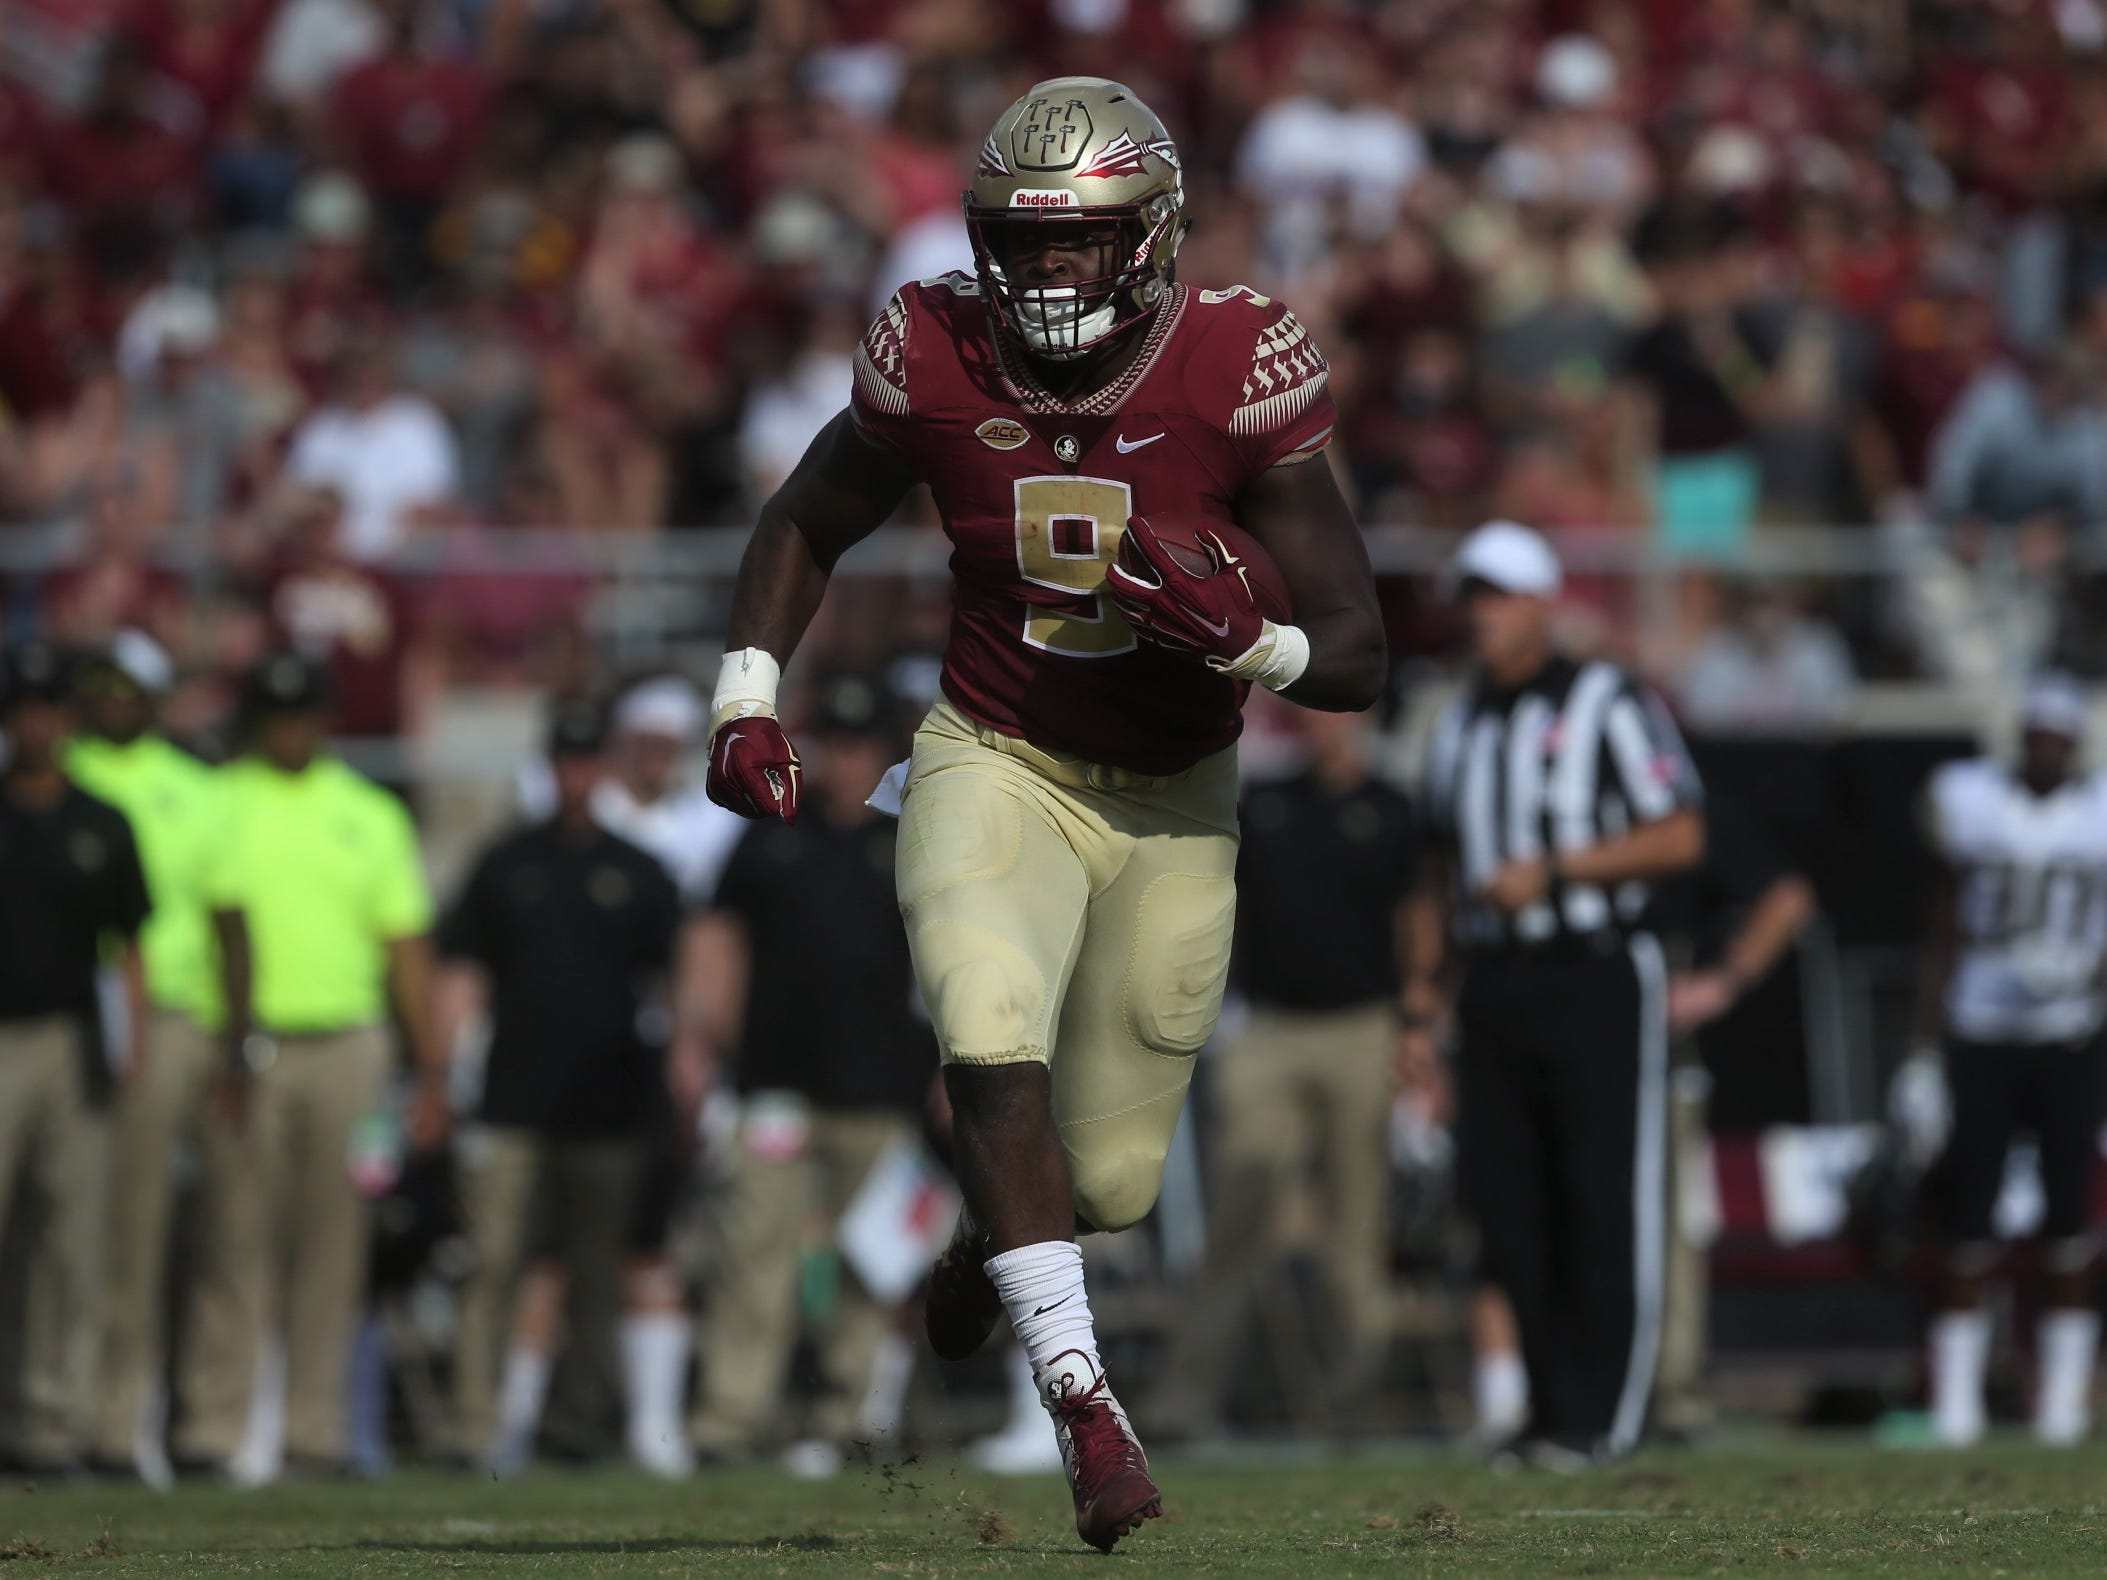 Florida State running back Jacques Patrick breaks into space on a long run, setting up his own touchdown against Wake Forest during a game at Doak Campbell Stadium on Saturday, Oct. 20, 2018.